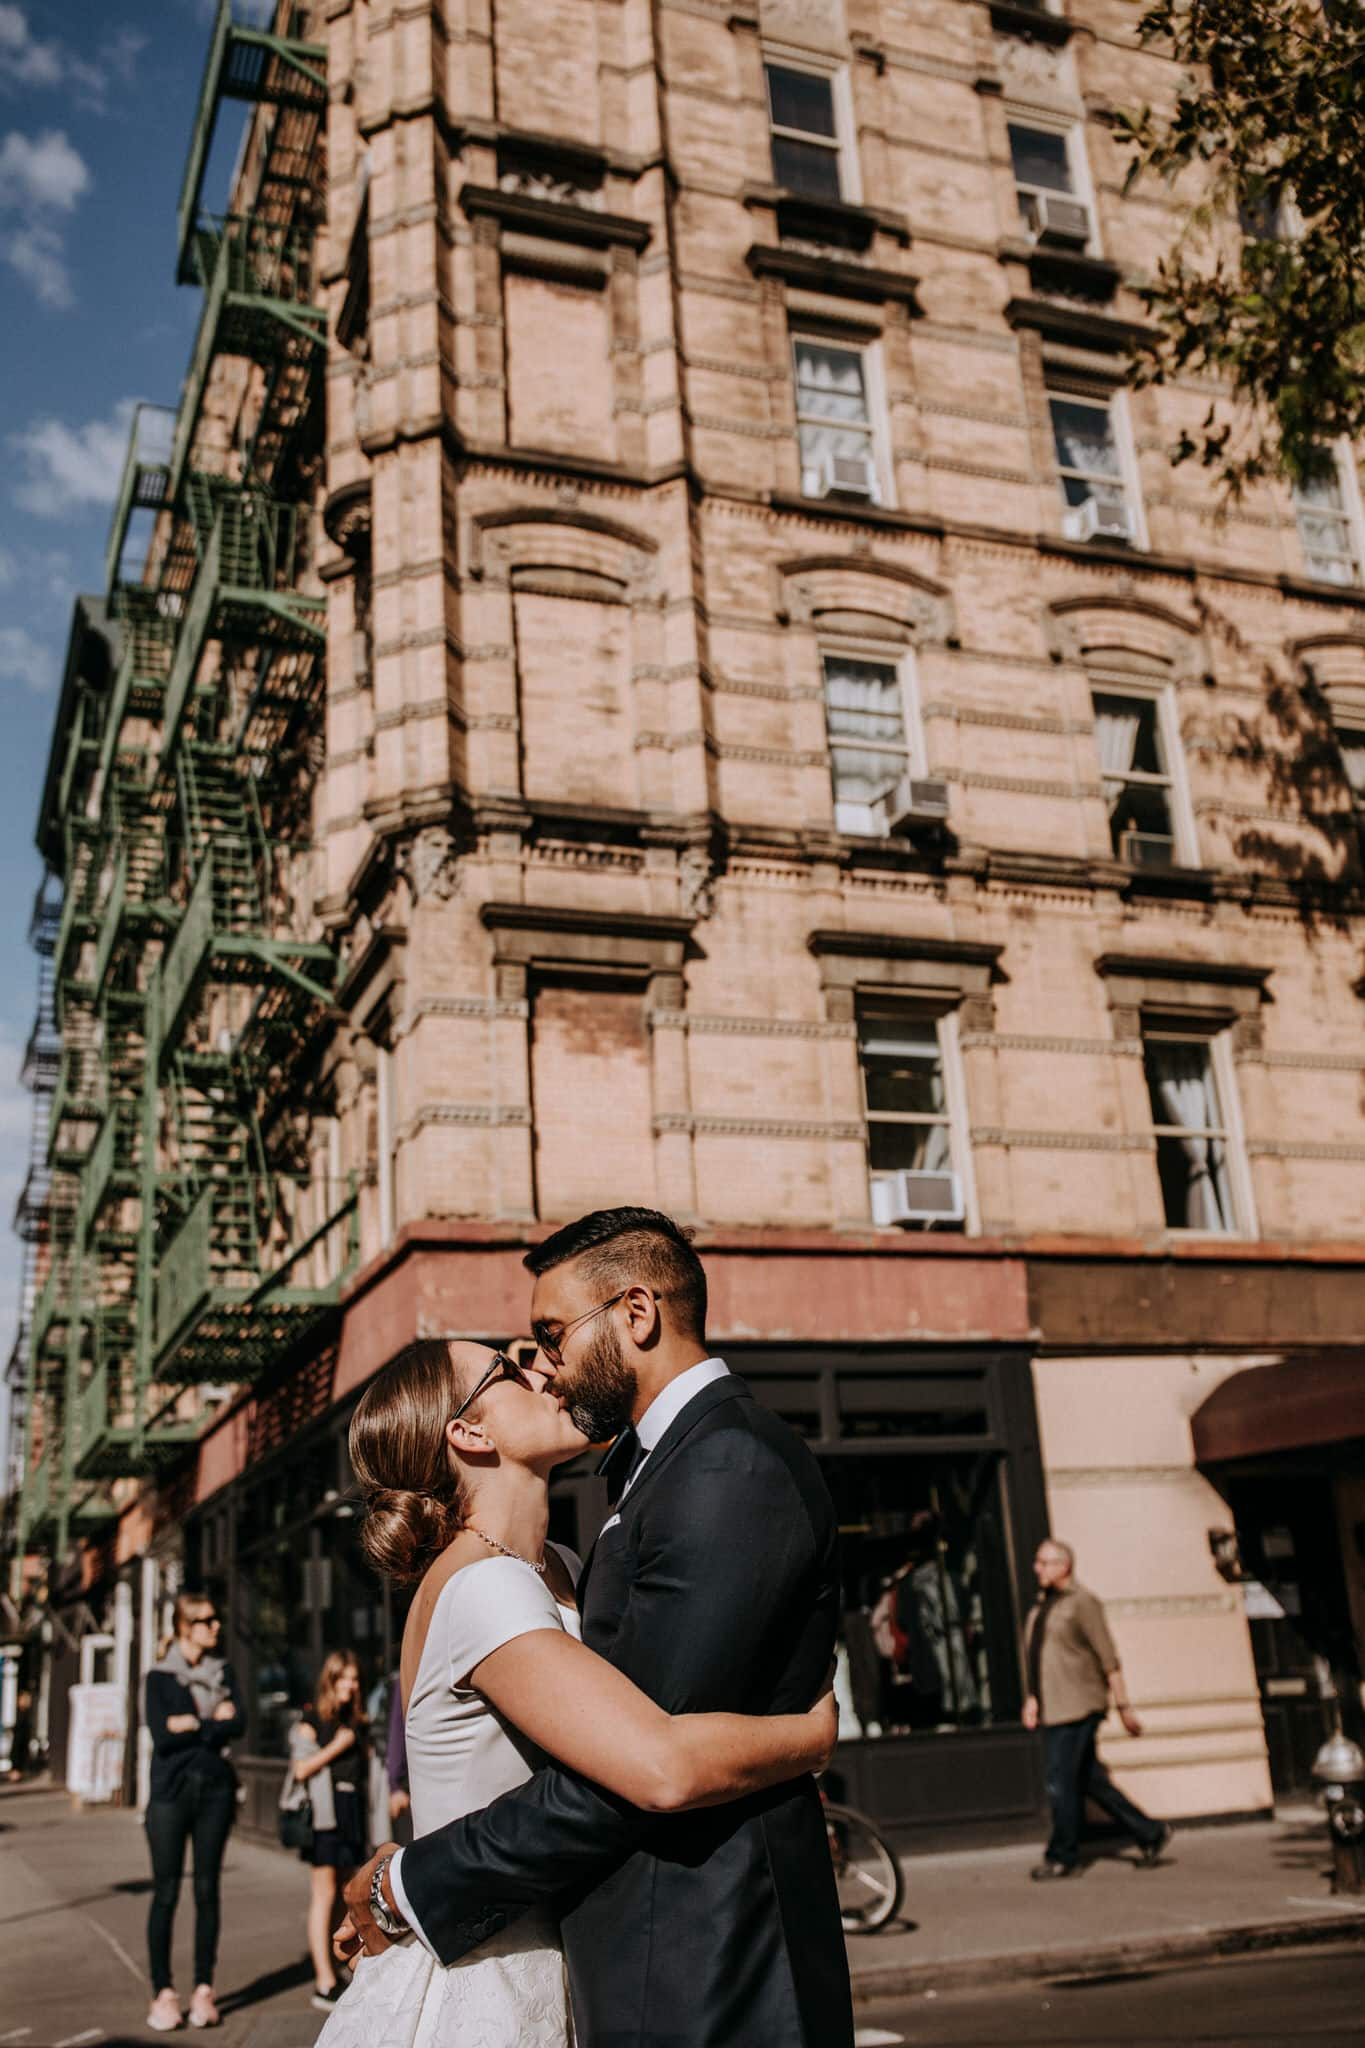 The bride and groom kissing on their walk through the streets of New York. Wedding Photographer Brent Calis.